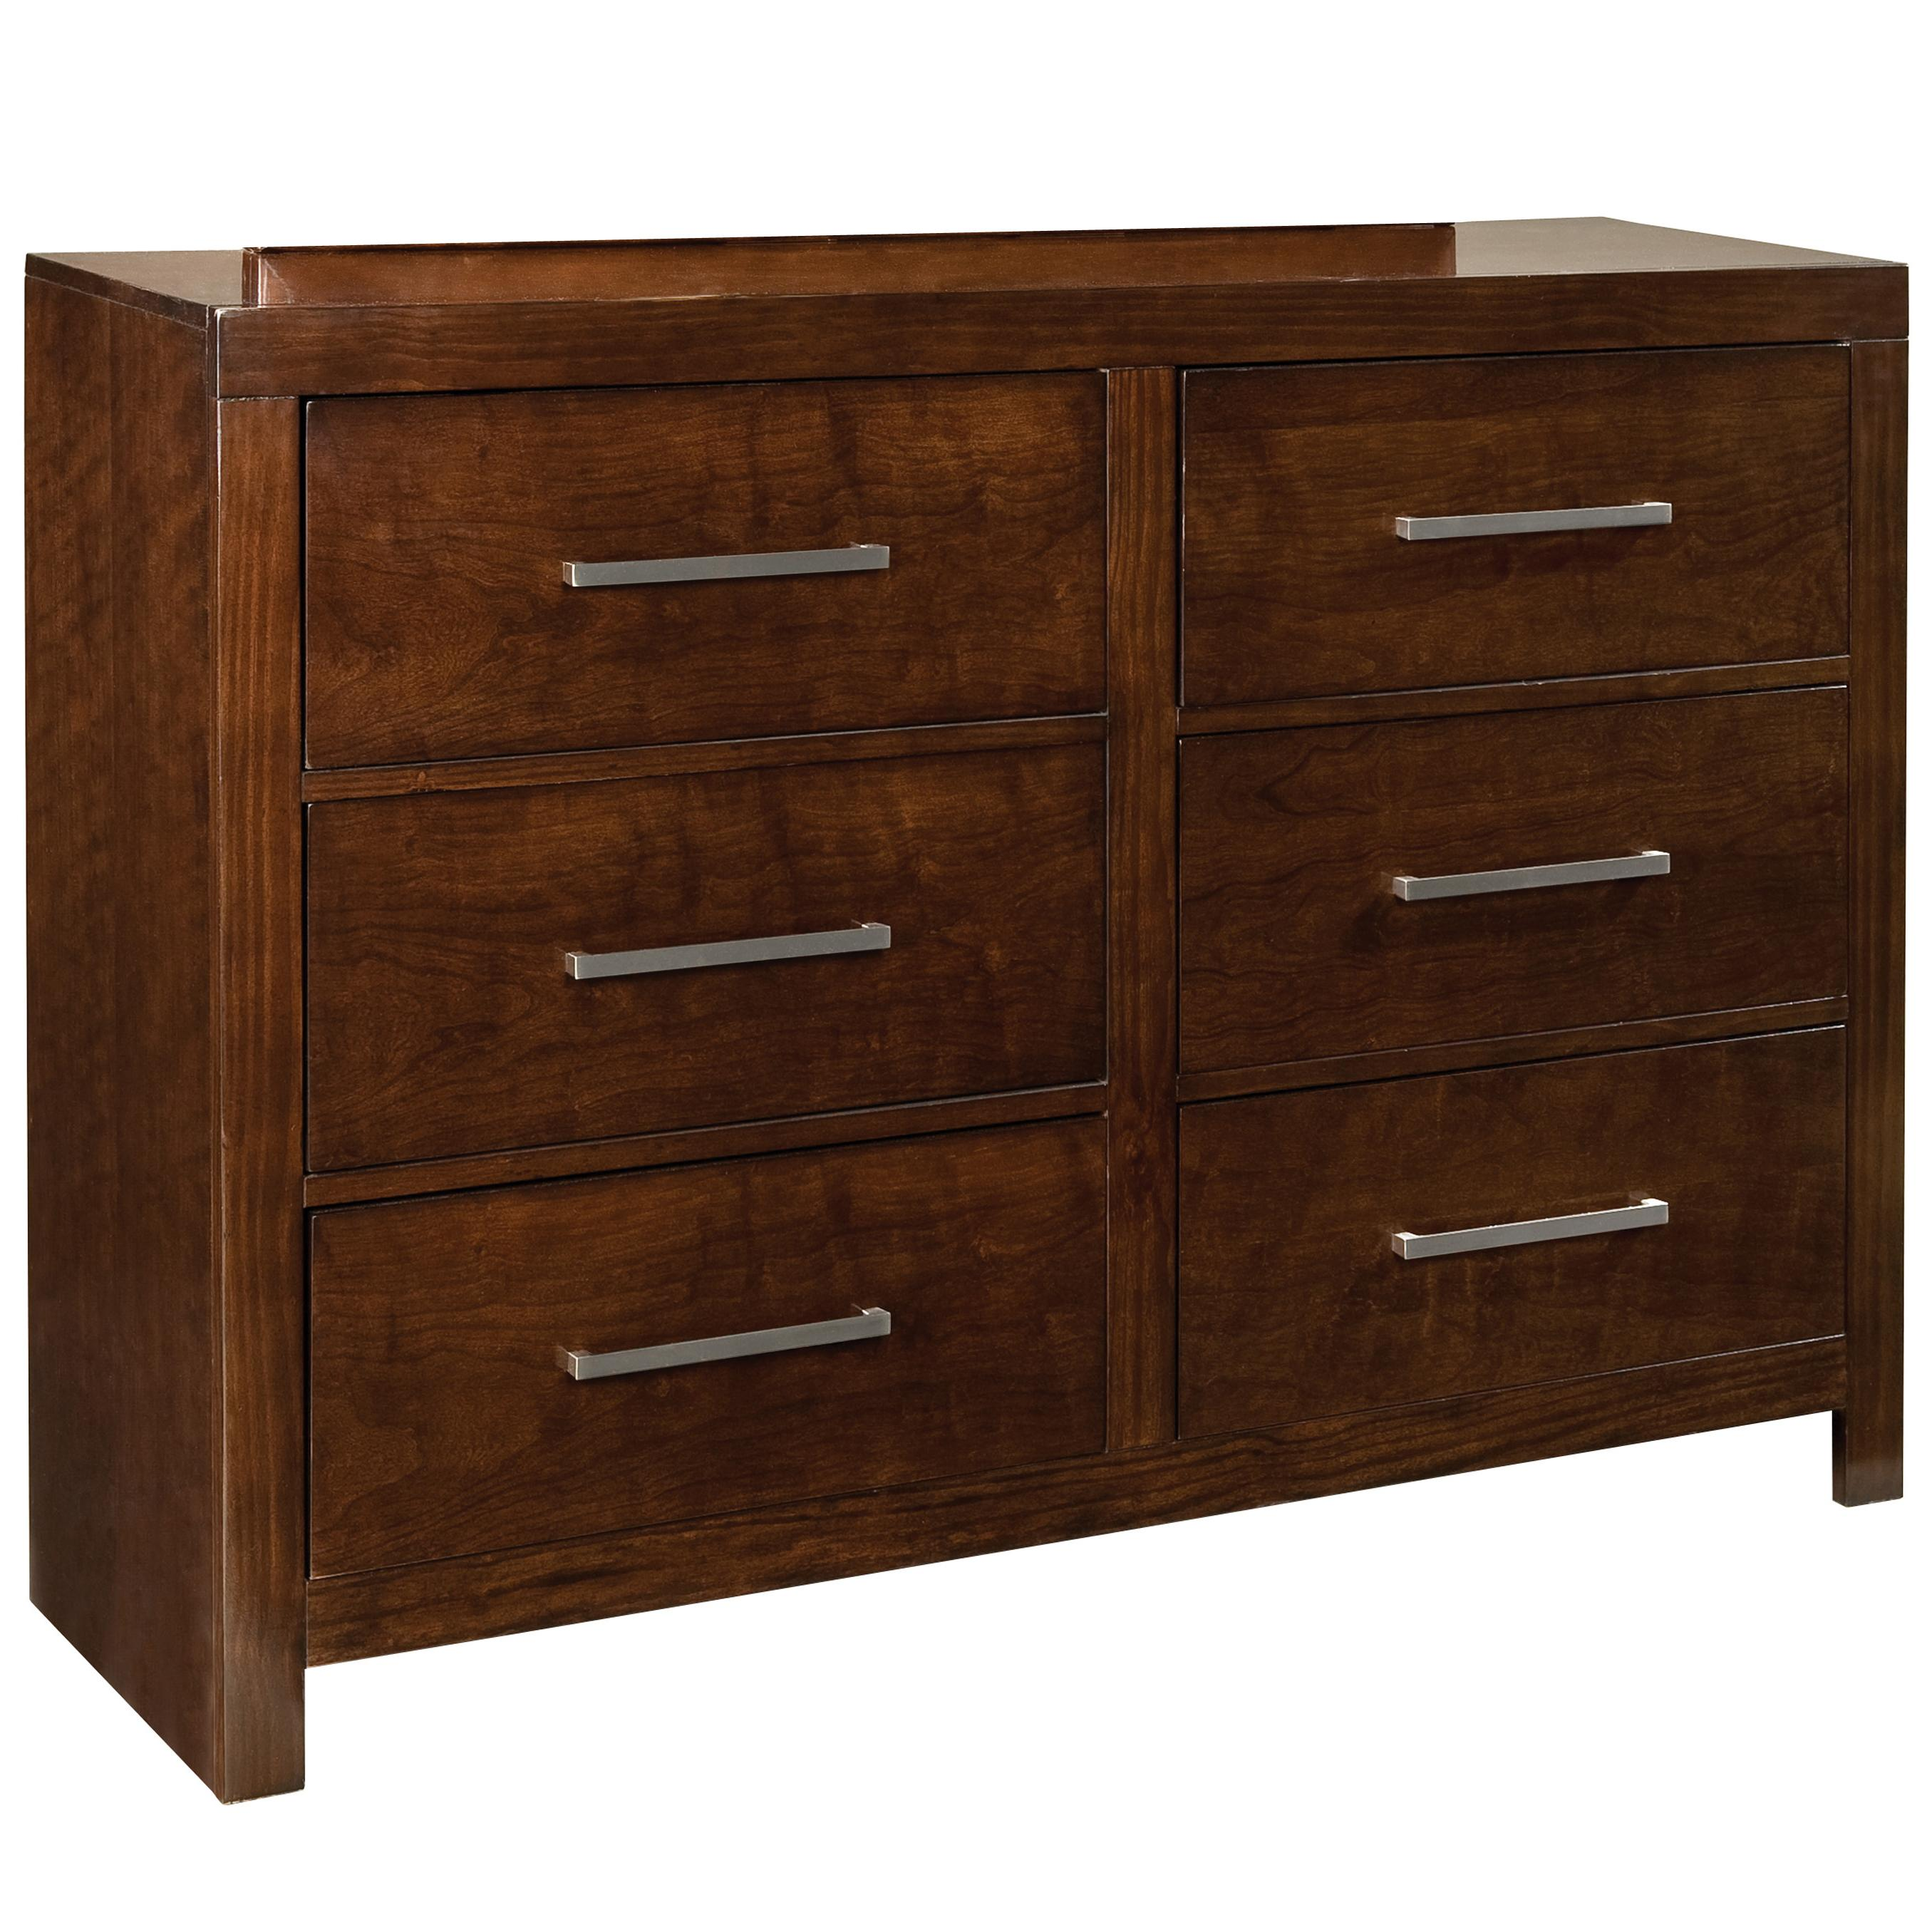 Standard Furniture Metro Dresser - Item Number: 87959